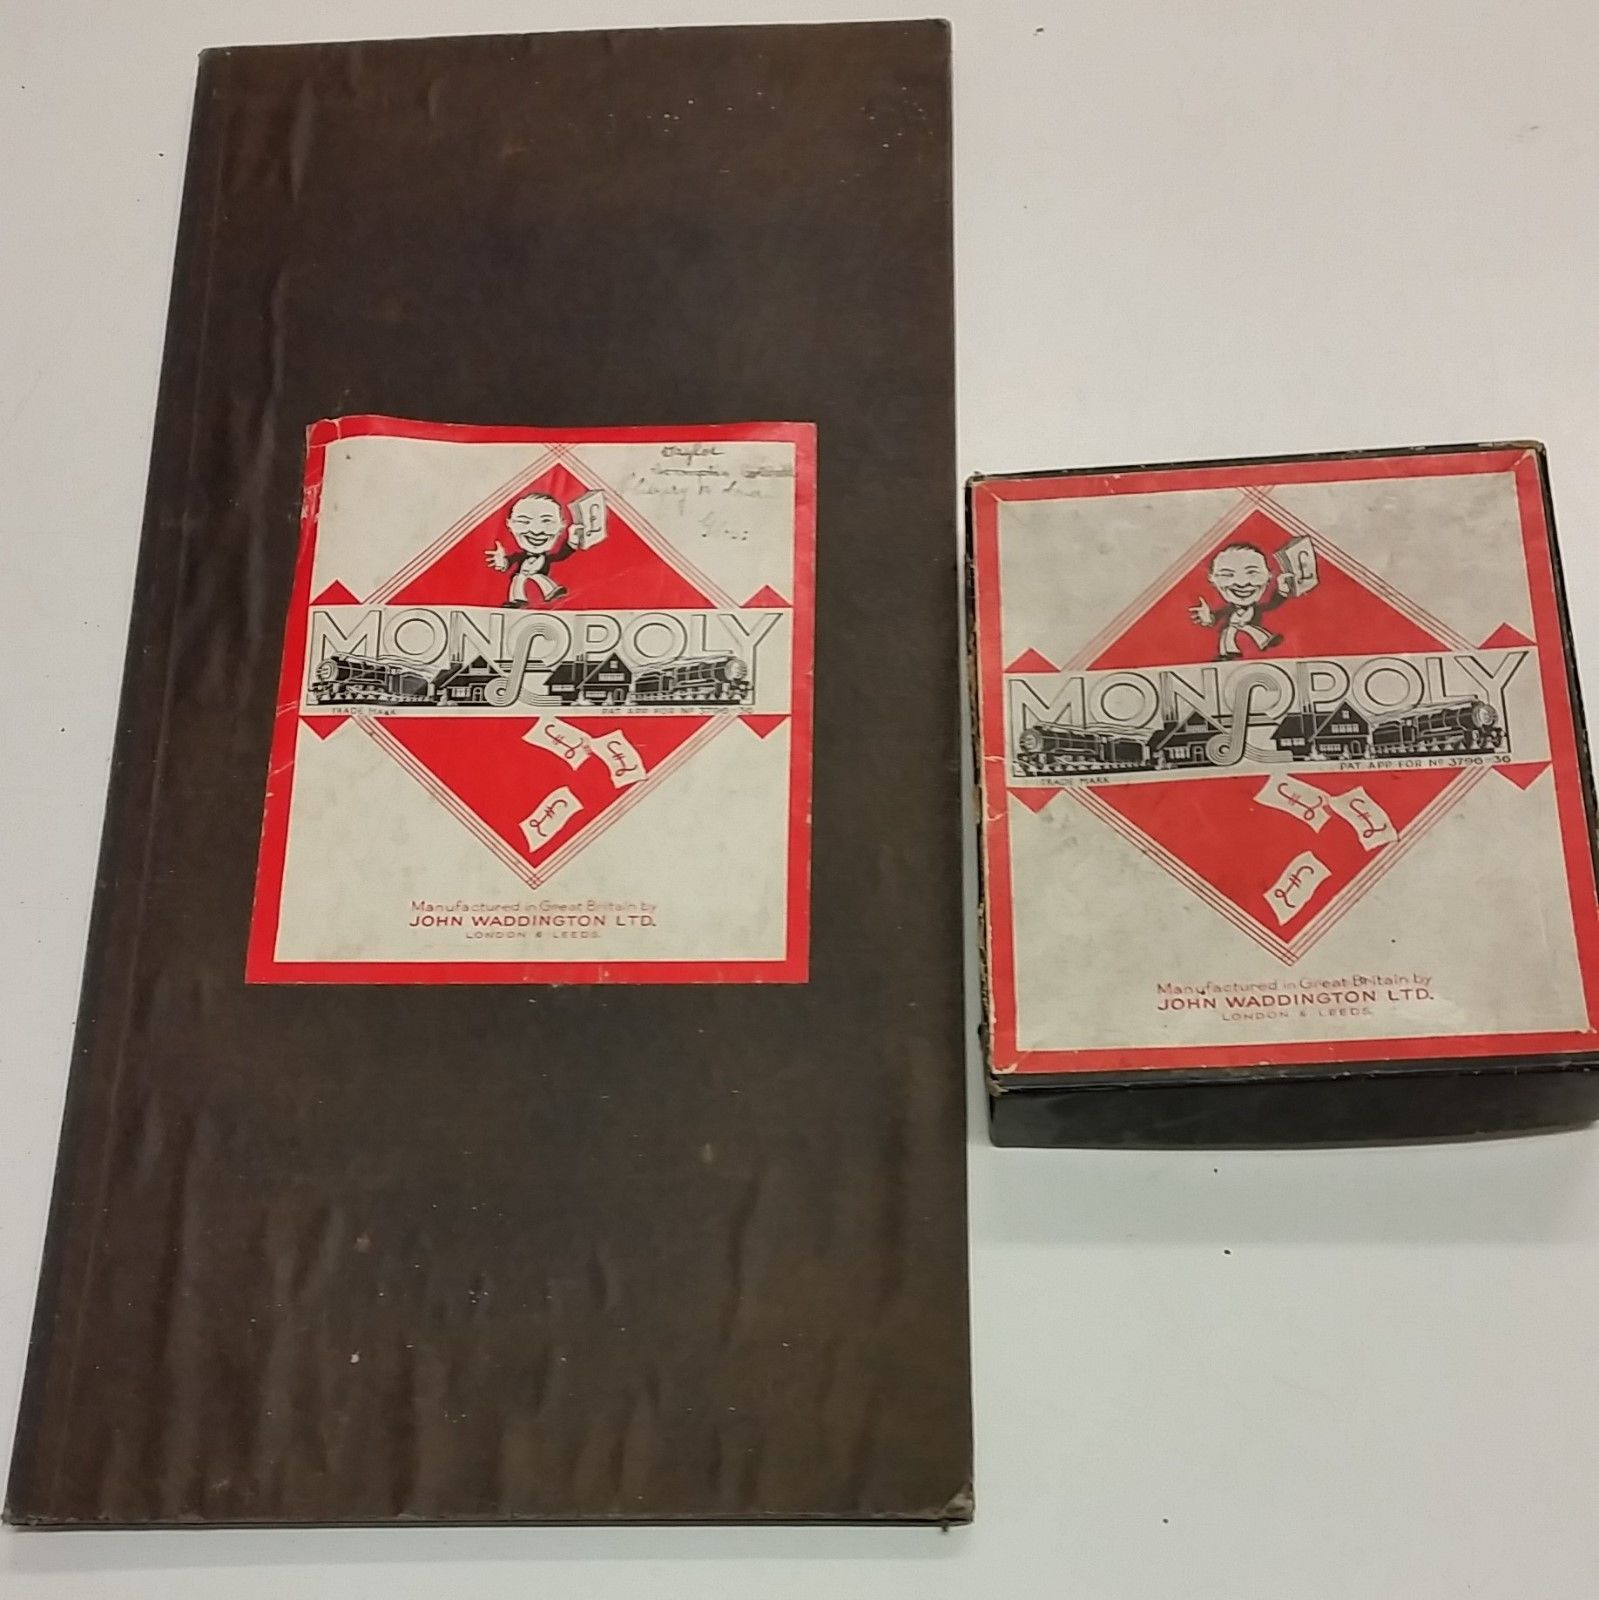 Vintage 1930s monopoly game patent applied for 379636